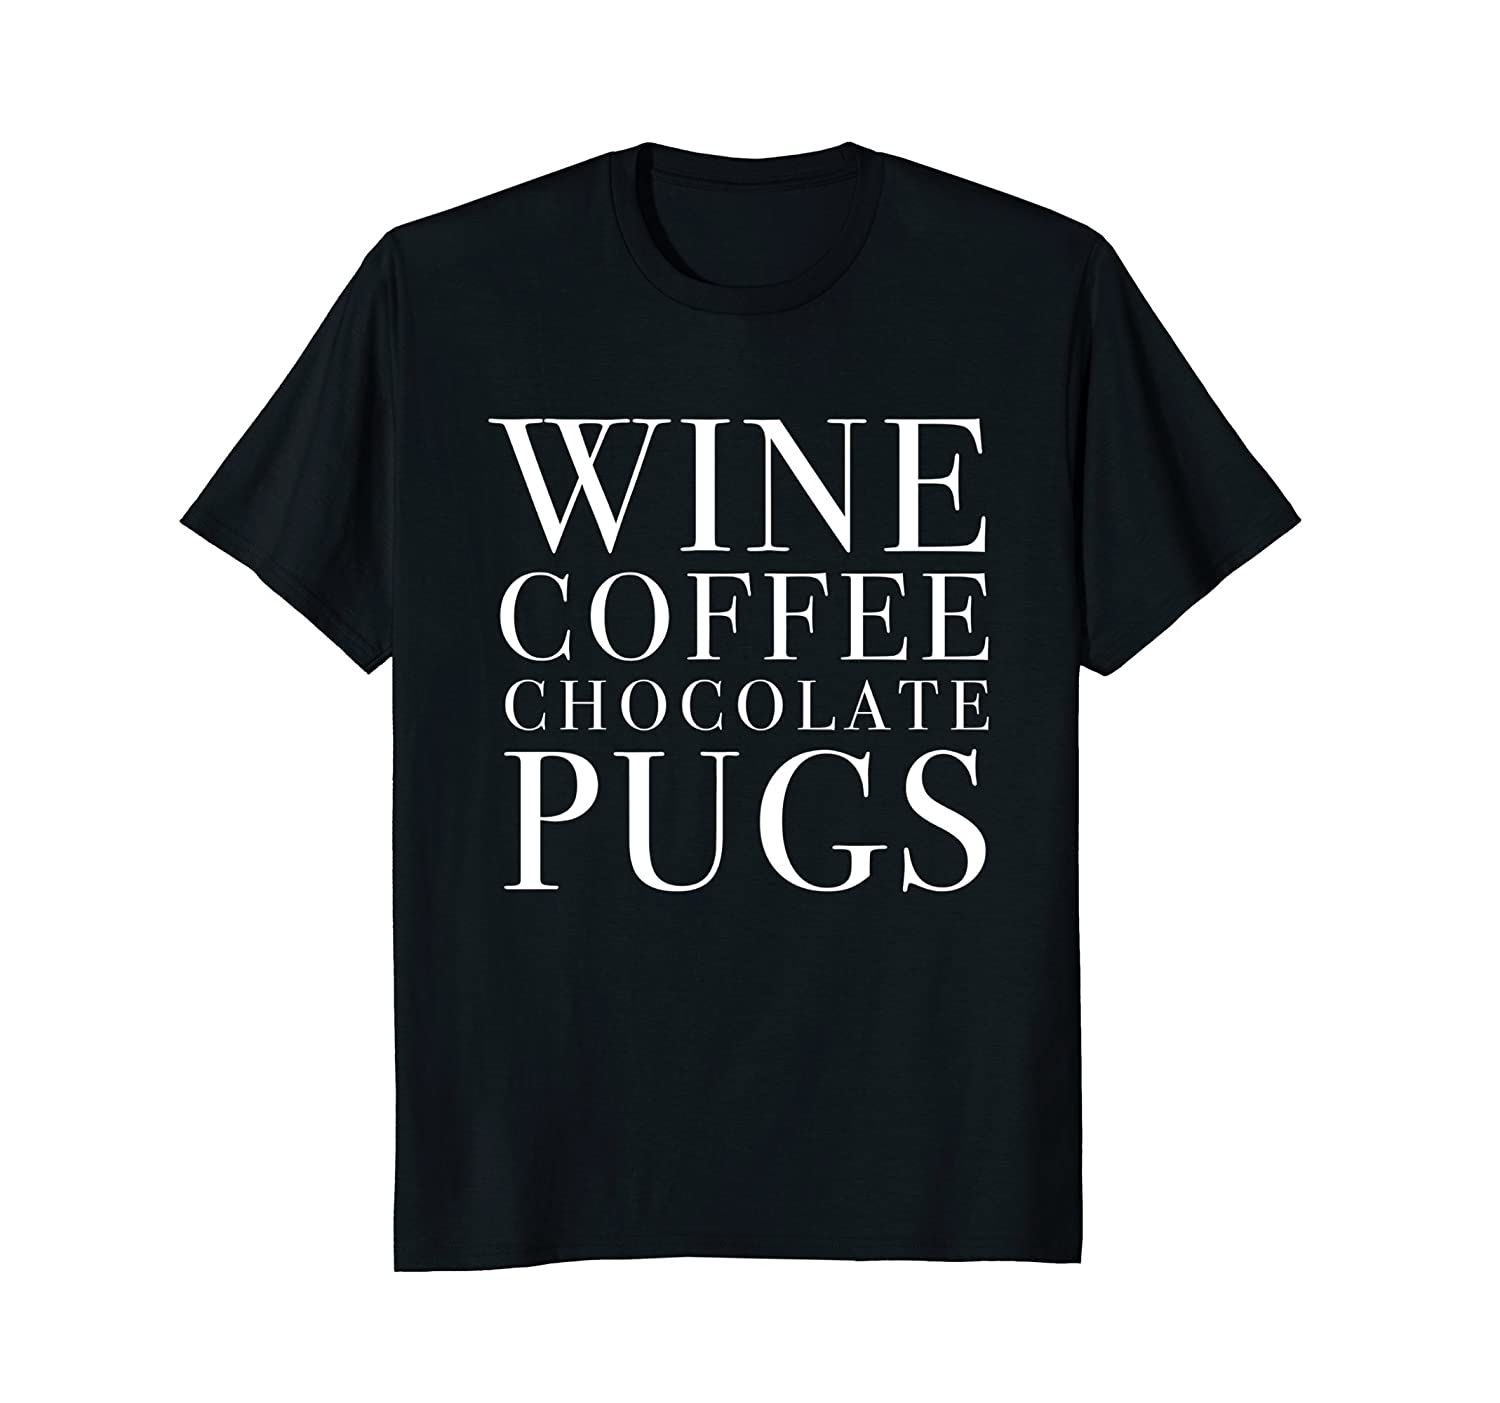 4d9dded1 Wine Coffee Chocolate Pugs Tshirt Funny Mothers Day Gift Mom-anz ...